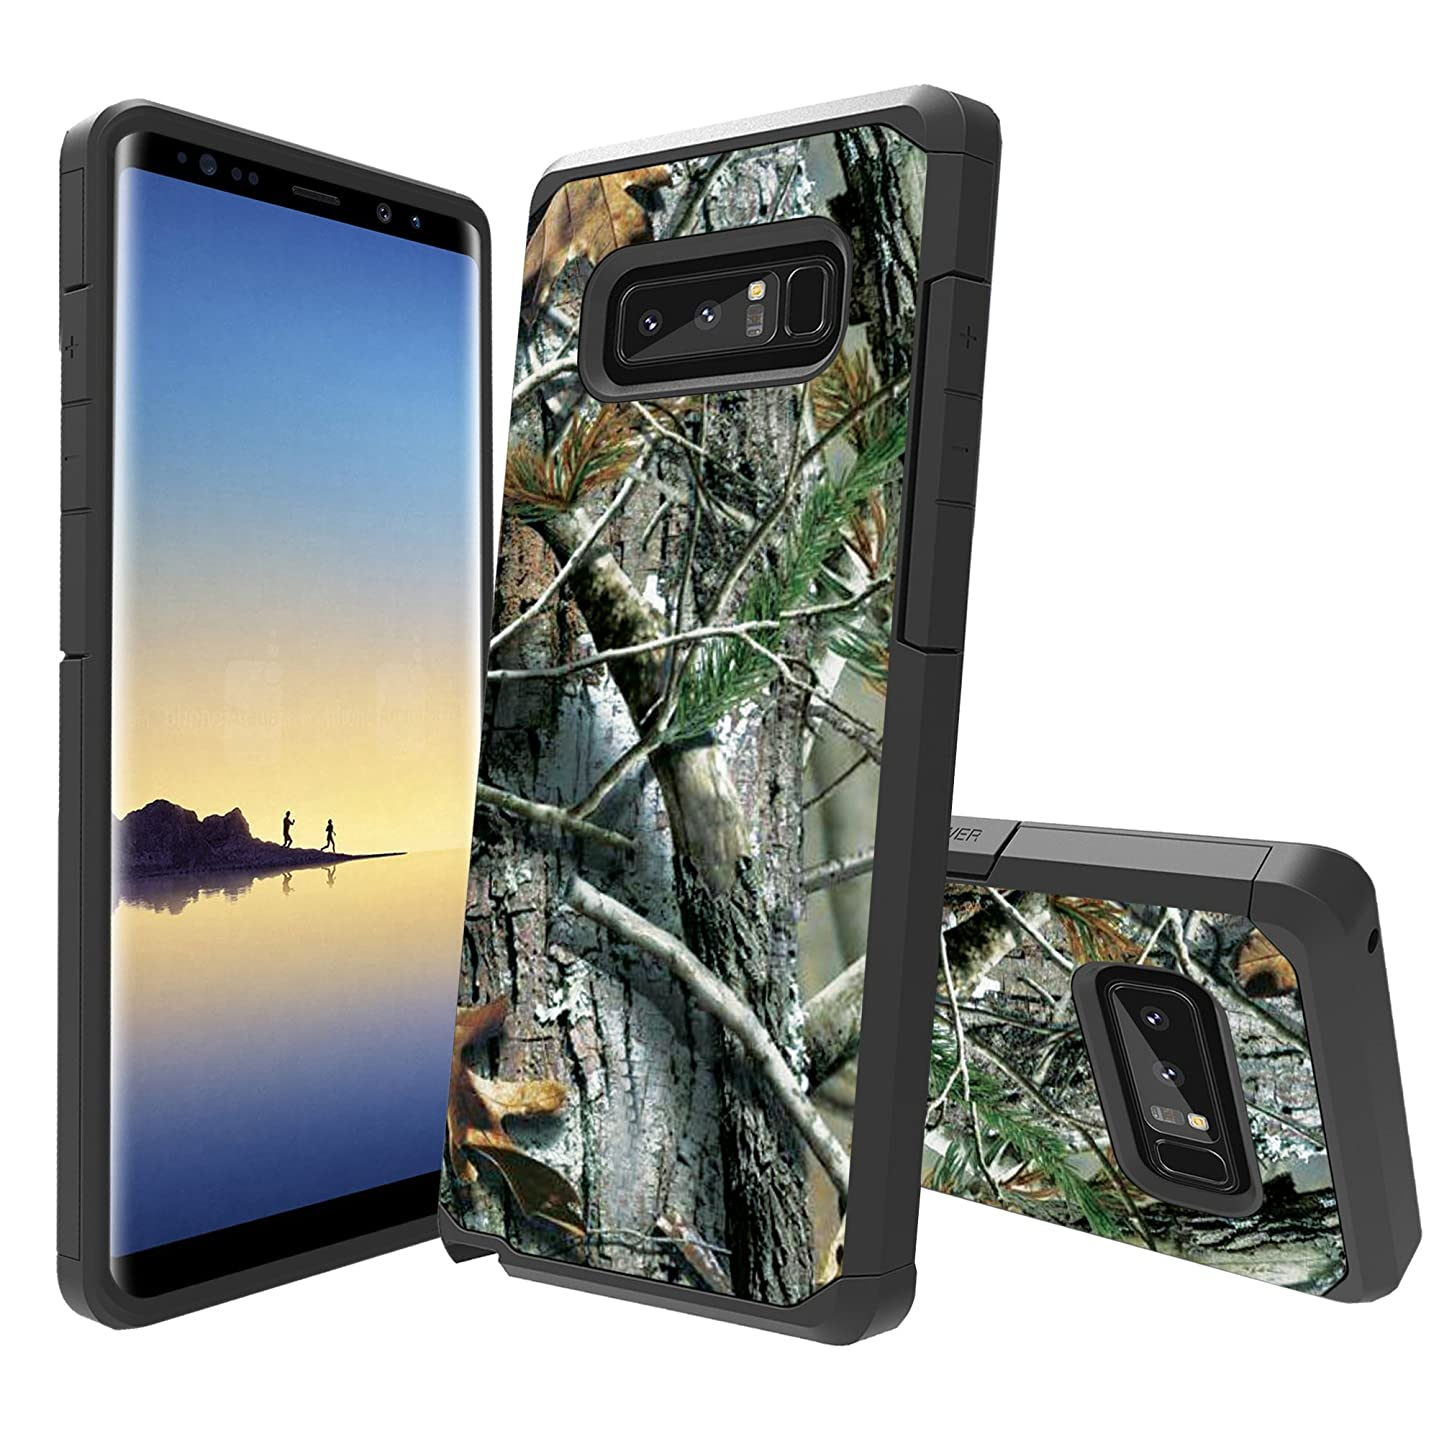 MINITURTLE Case Compatible with Samsung Galaxy Note 8 Case[Impact Resistant Silicone Interior][Slim][2-Part Protection] - Tree Camo